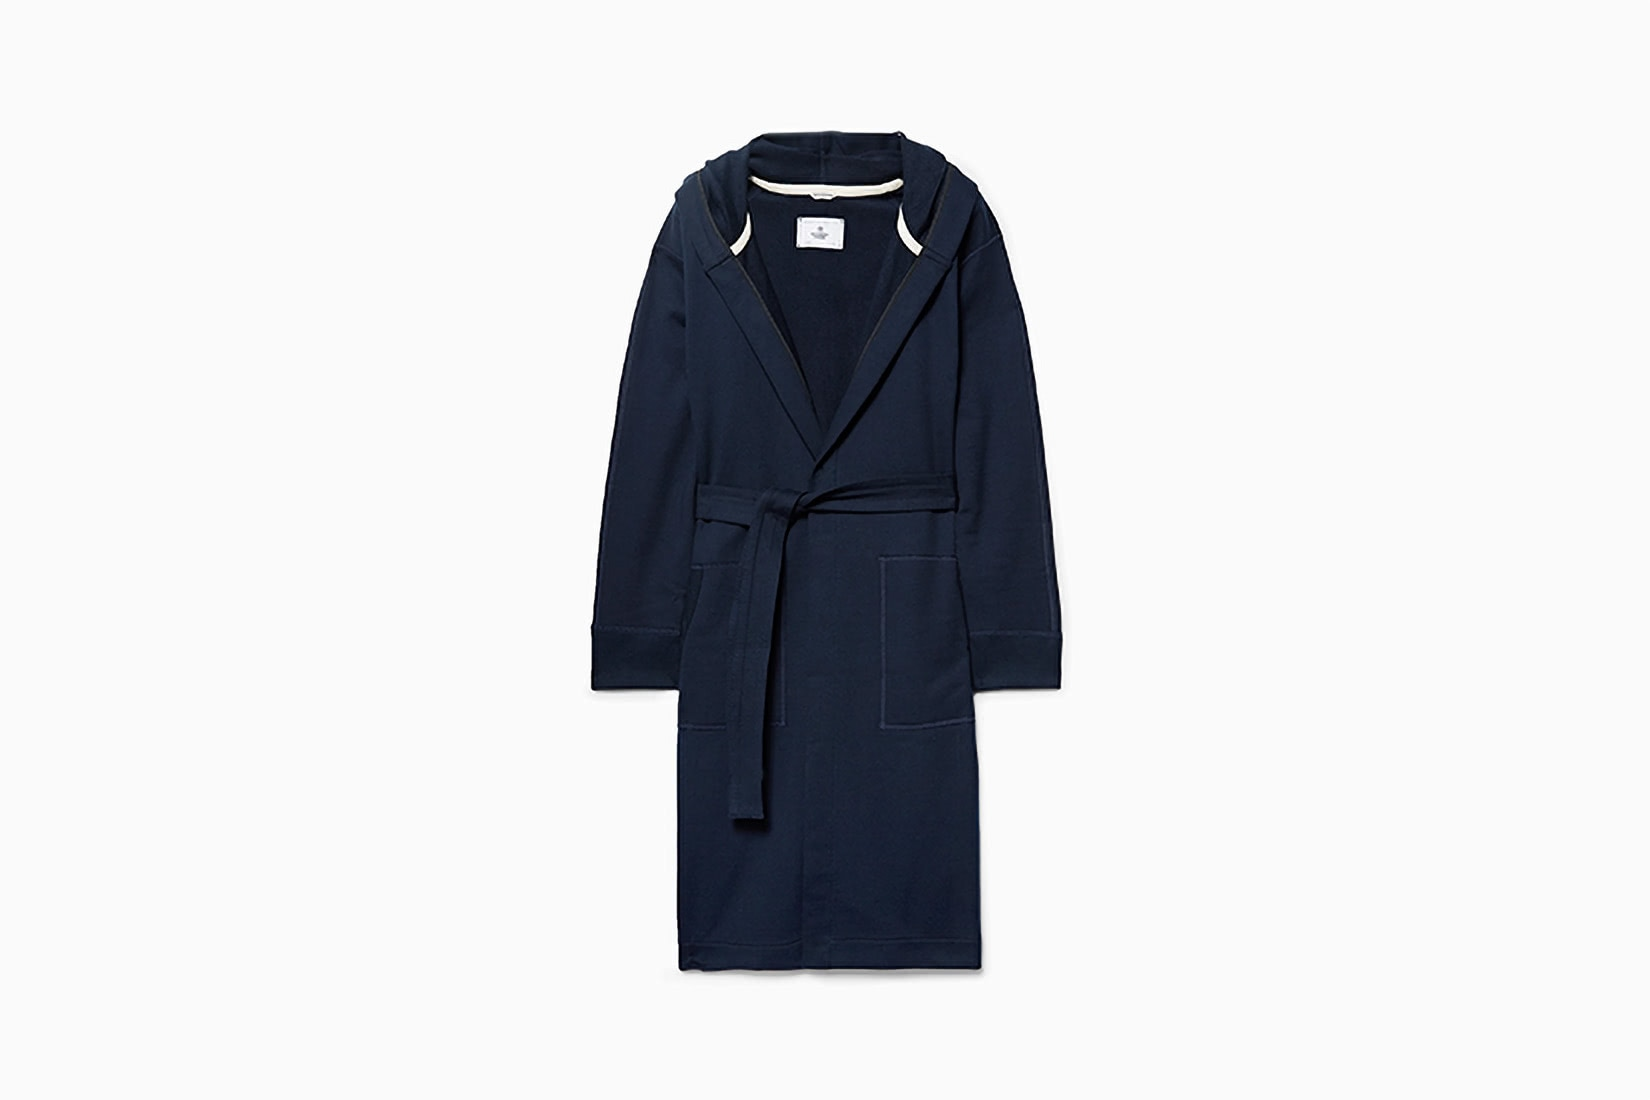 best robes men reigning champ robe luxe digital